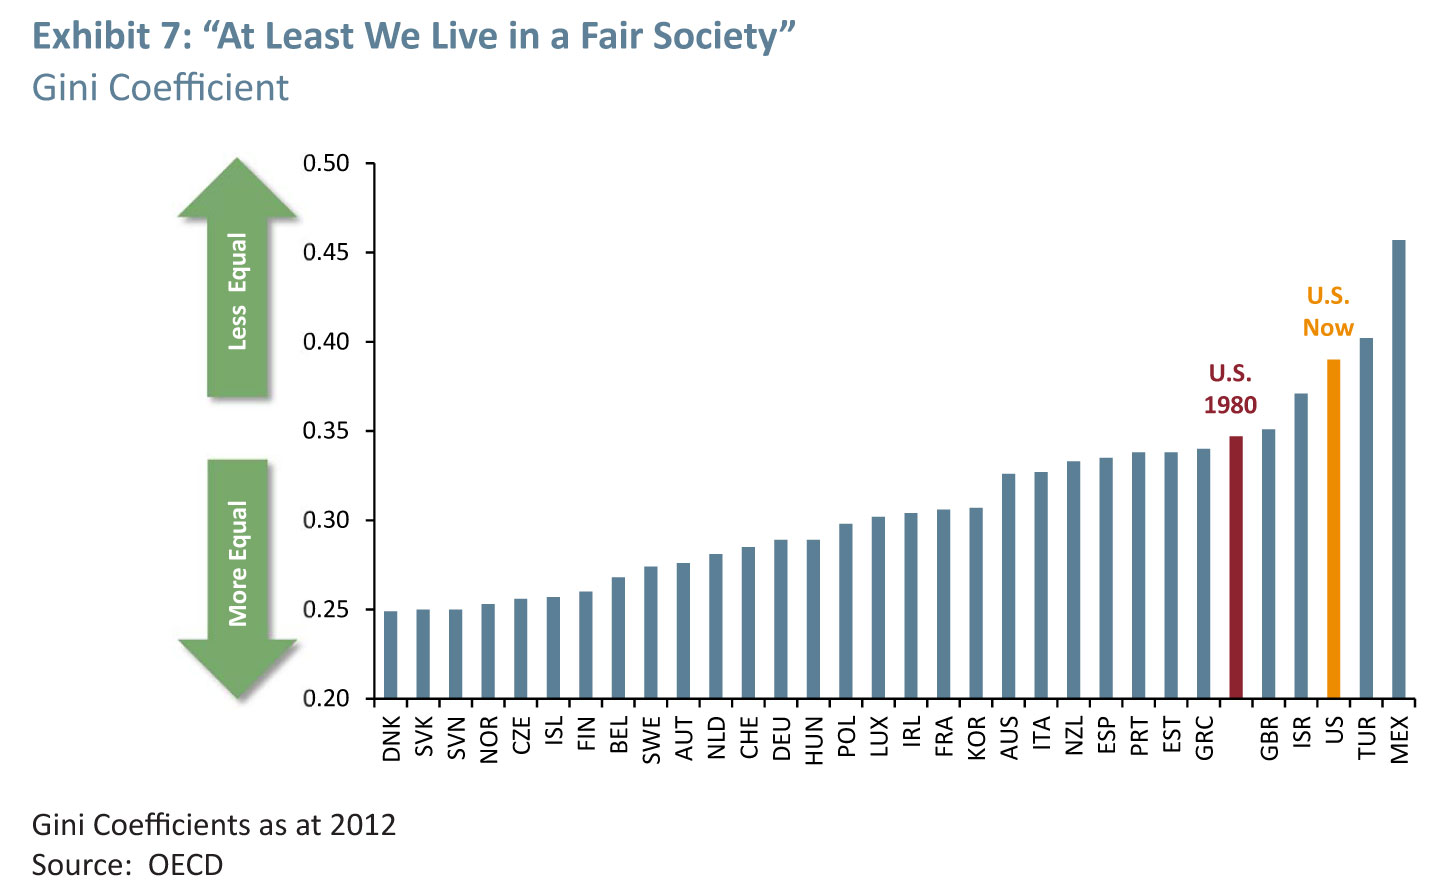 But Isn't the U.S. Society Fair? (Click to enlarge)